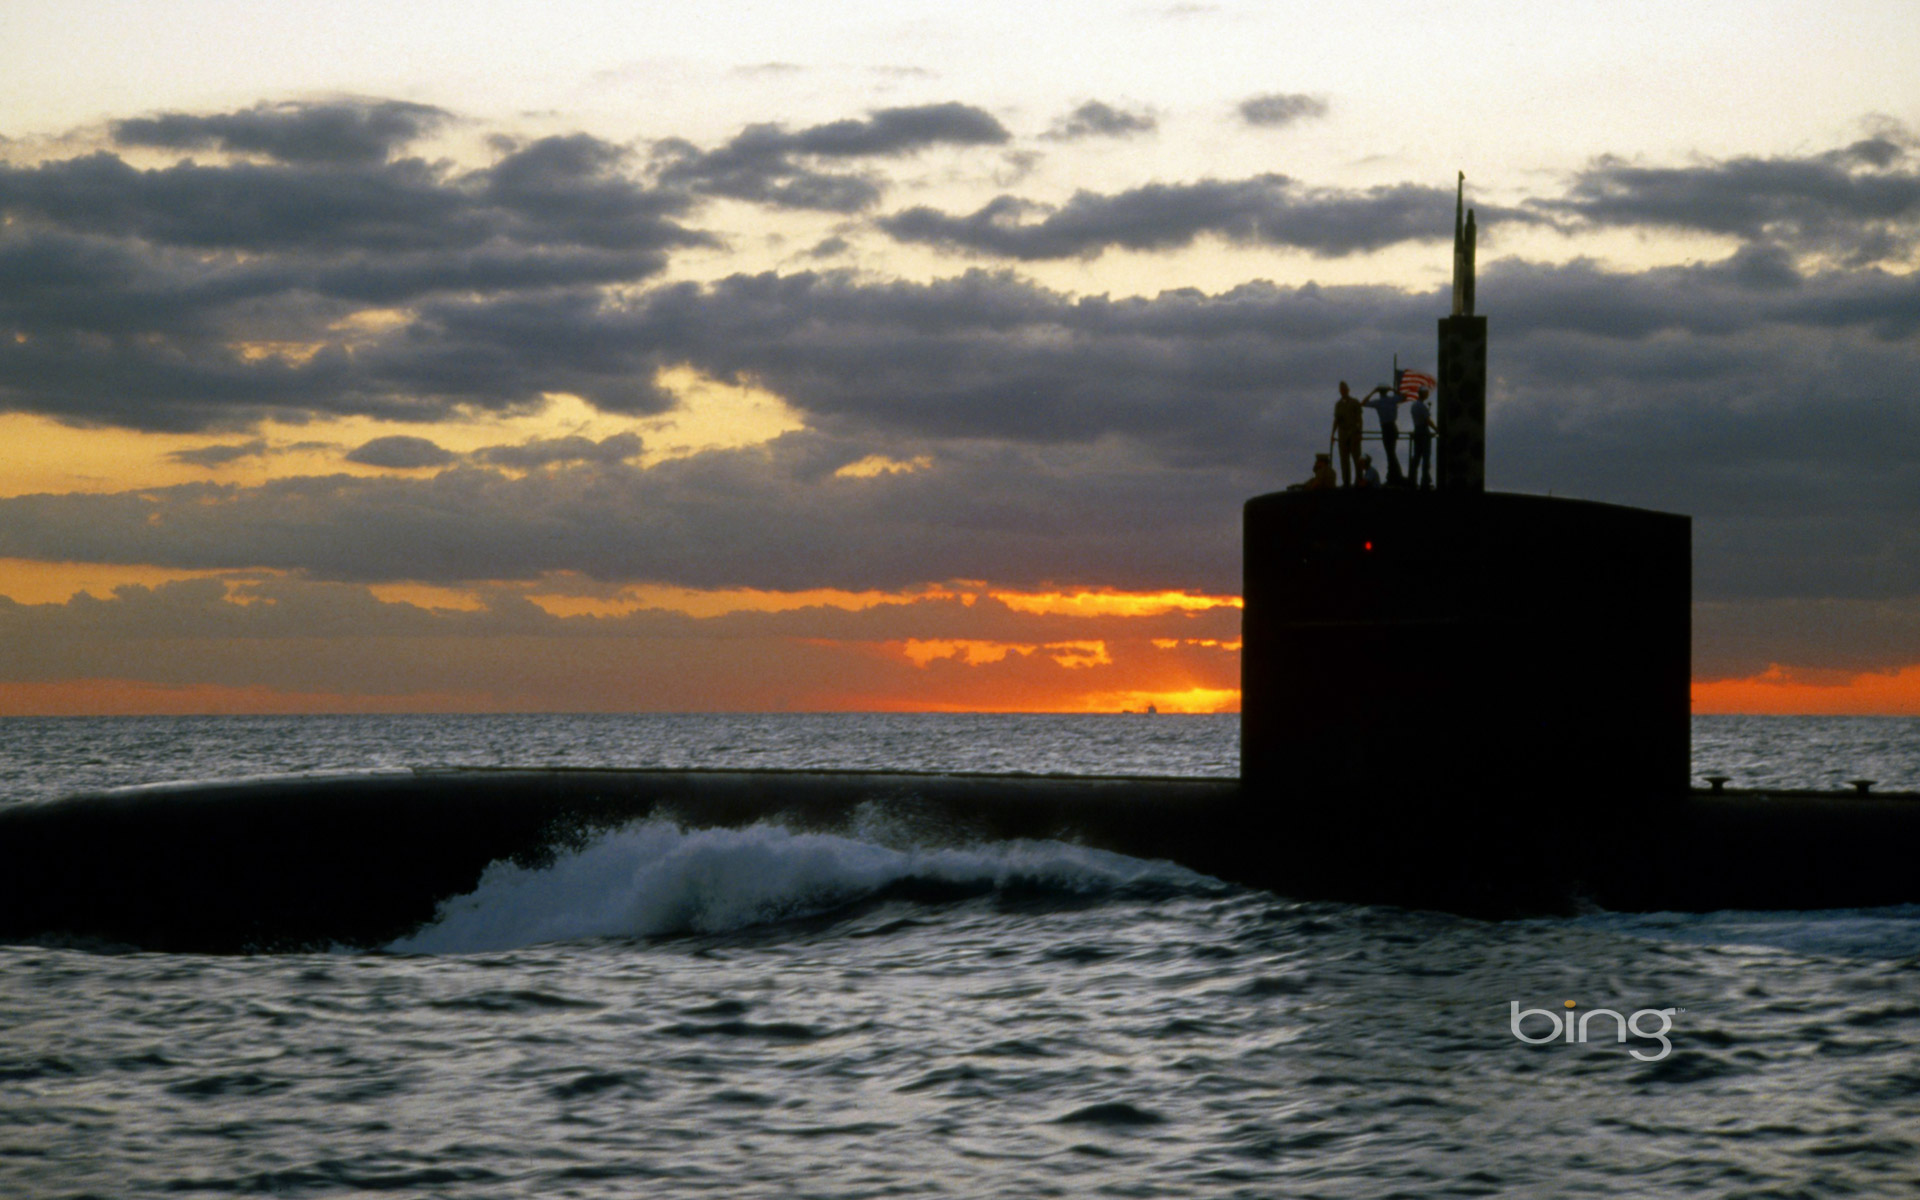 The USS San Francisco (SSN-711) at sea